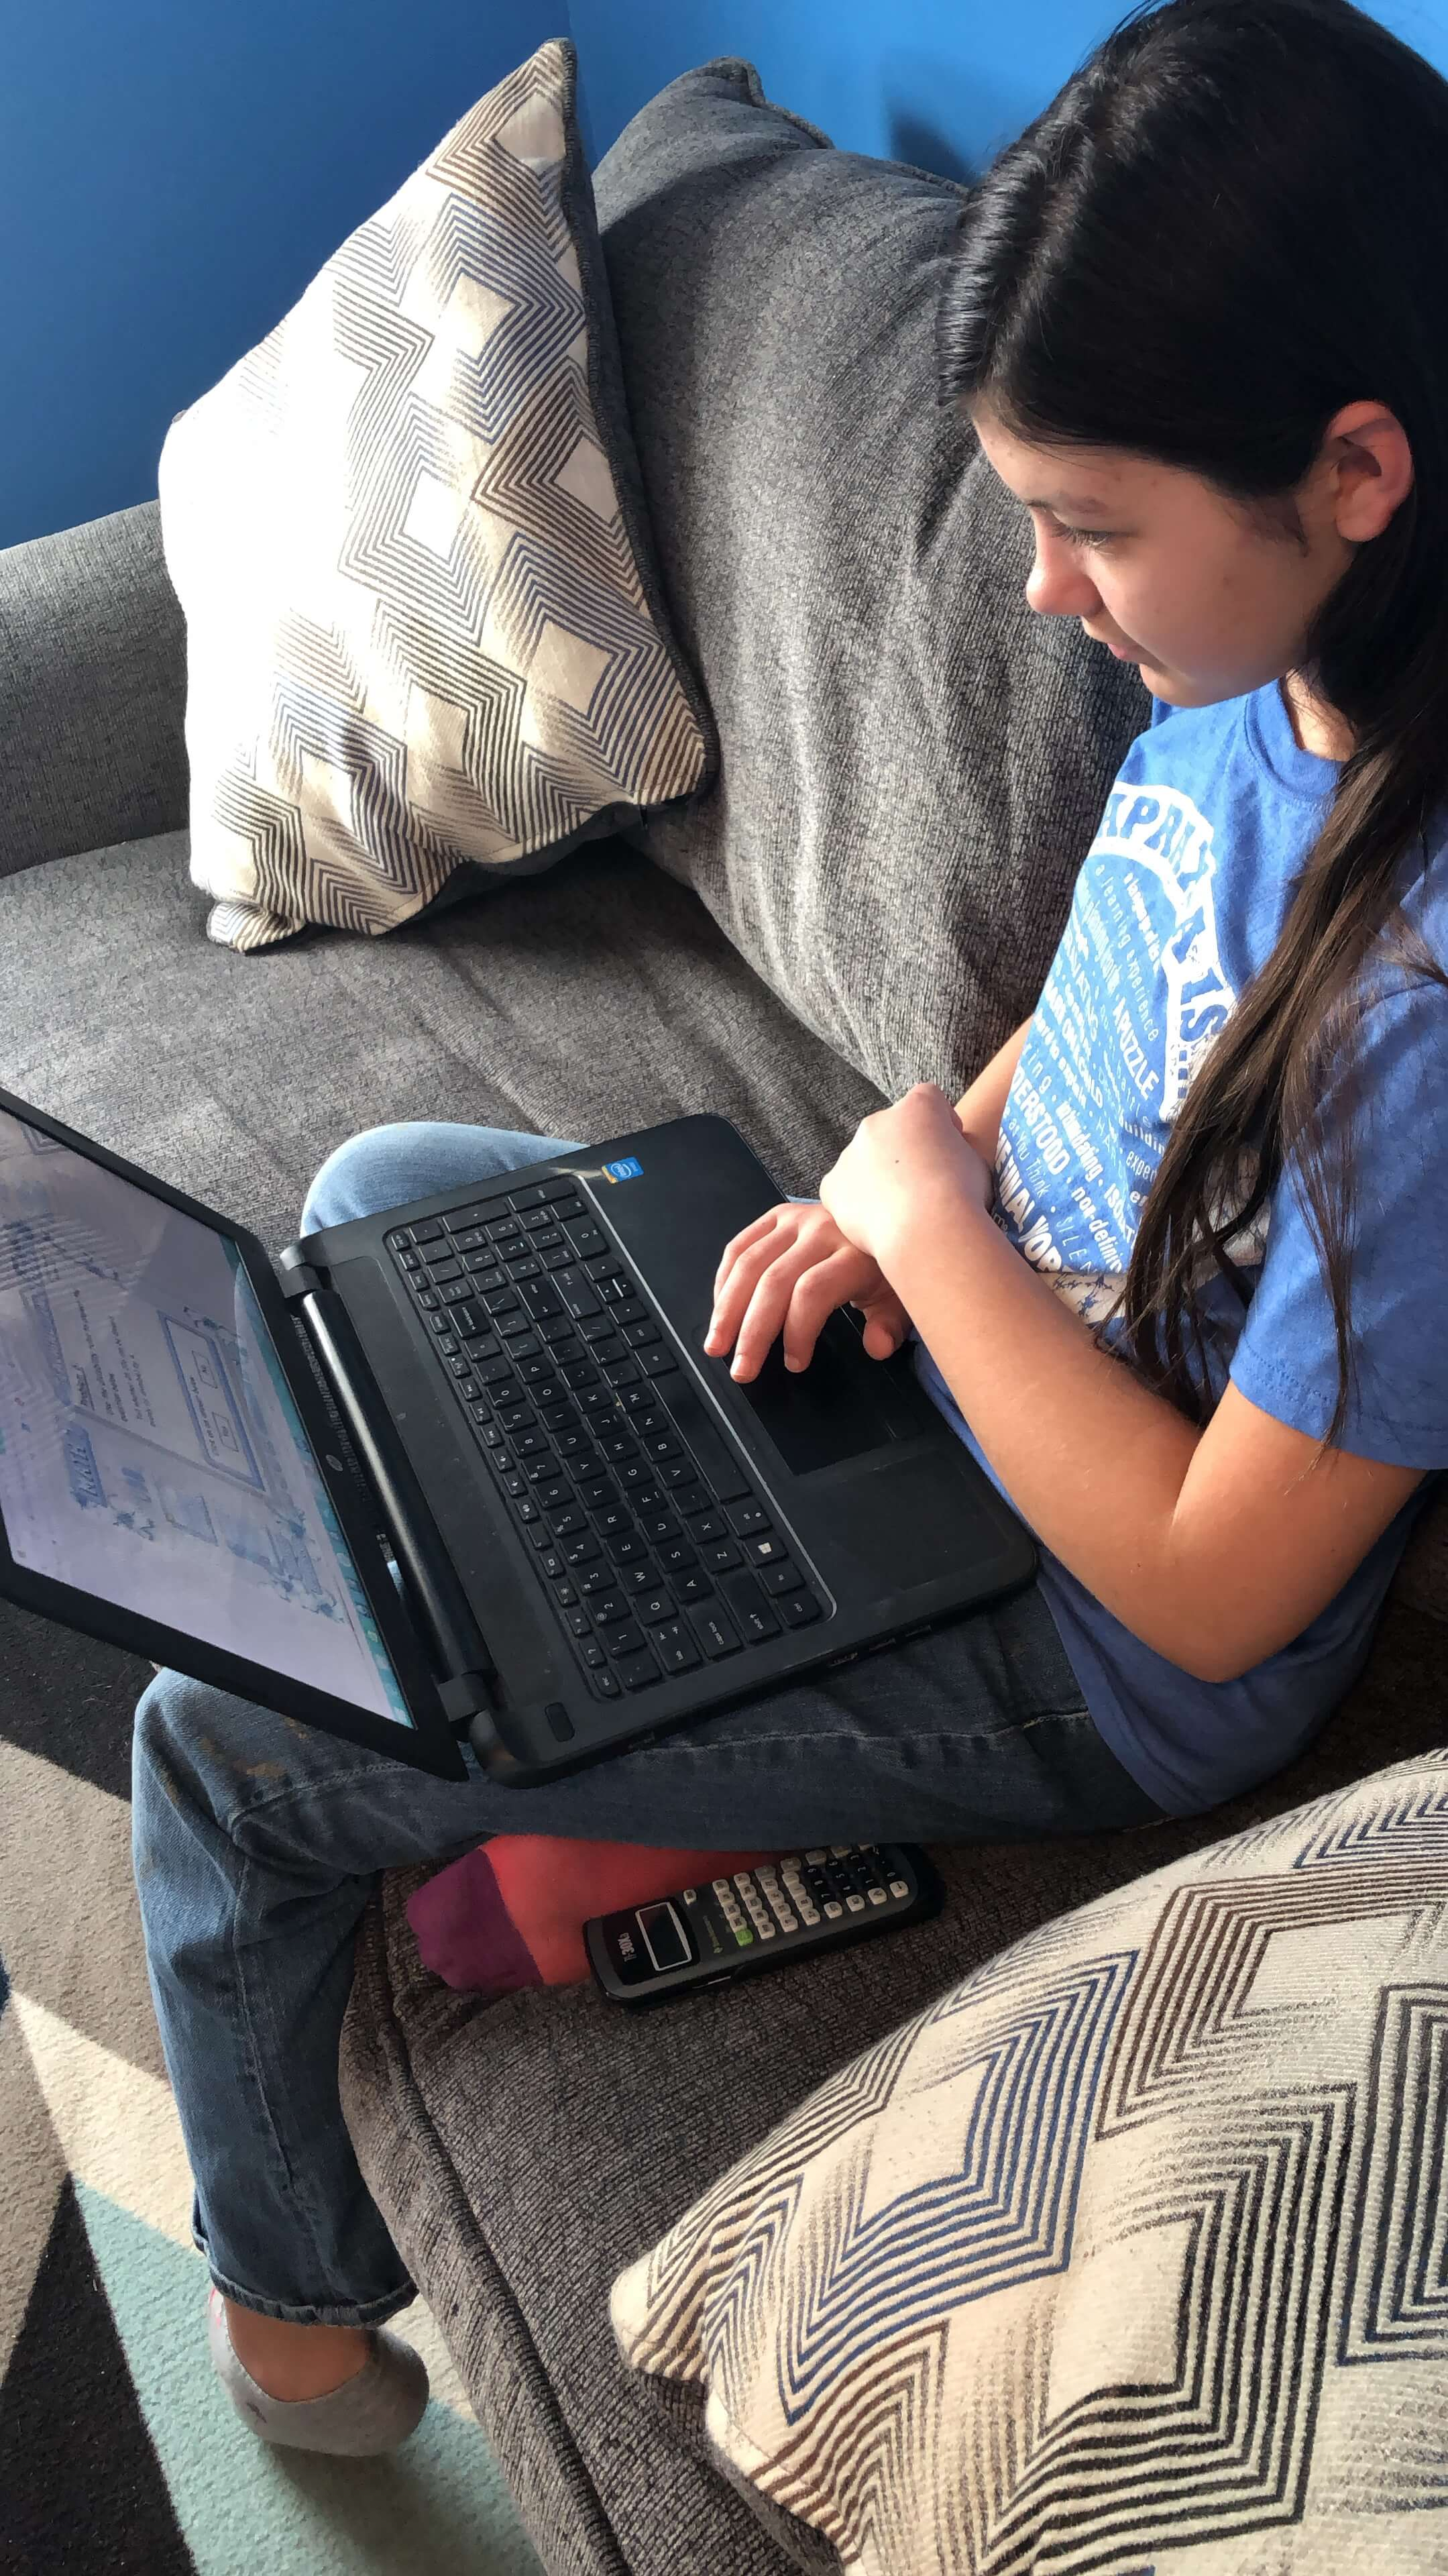 Online learning through Teaching Textbooks is the way to go for homeschool math!